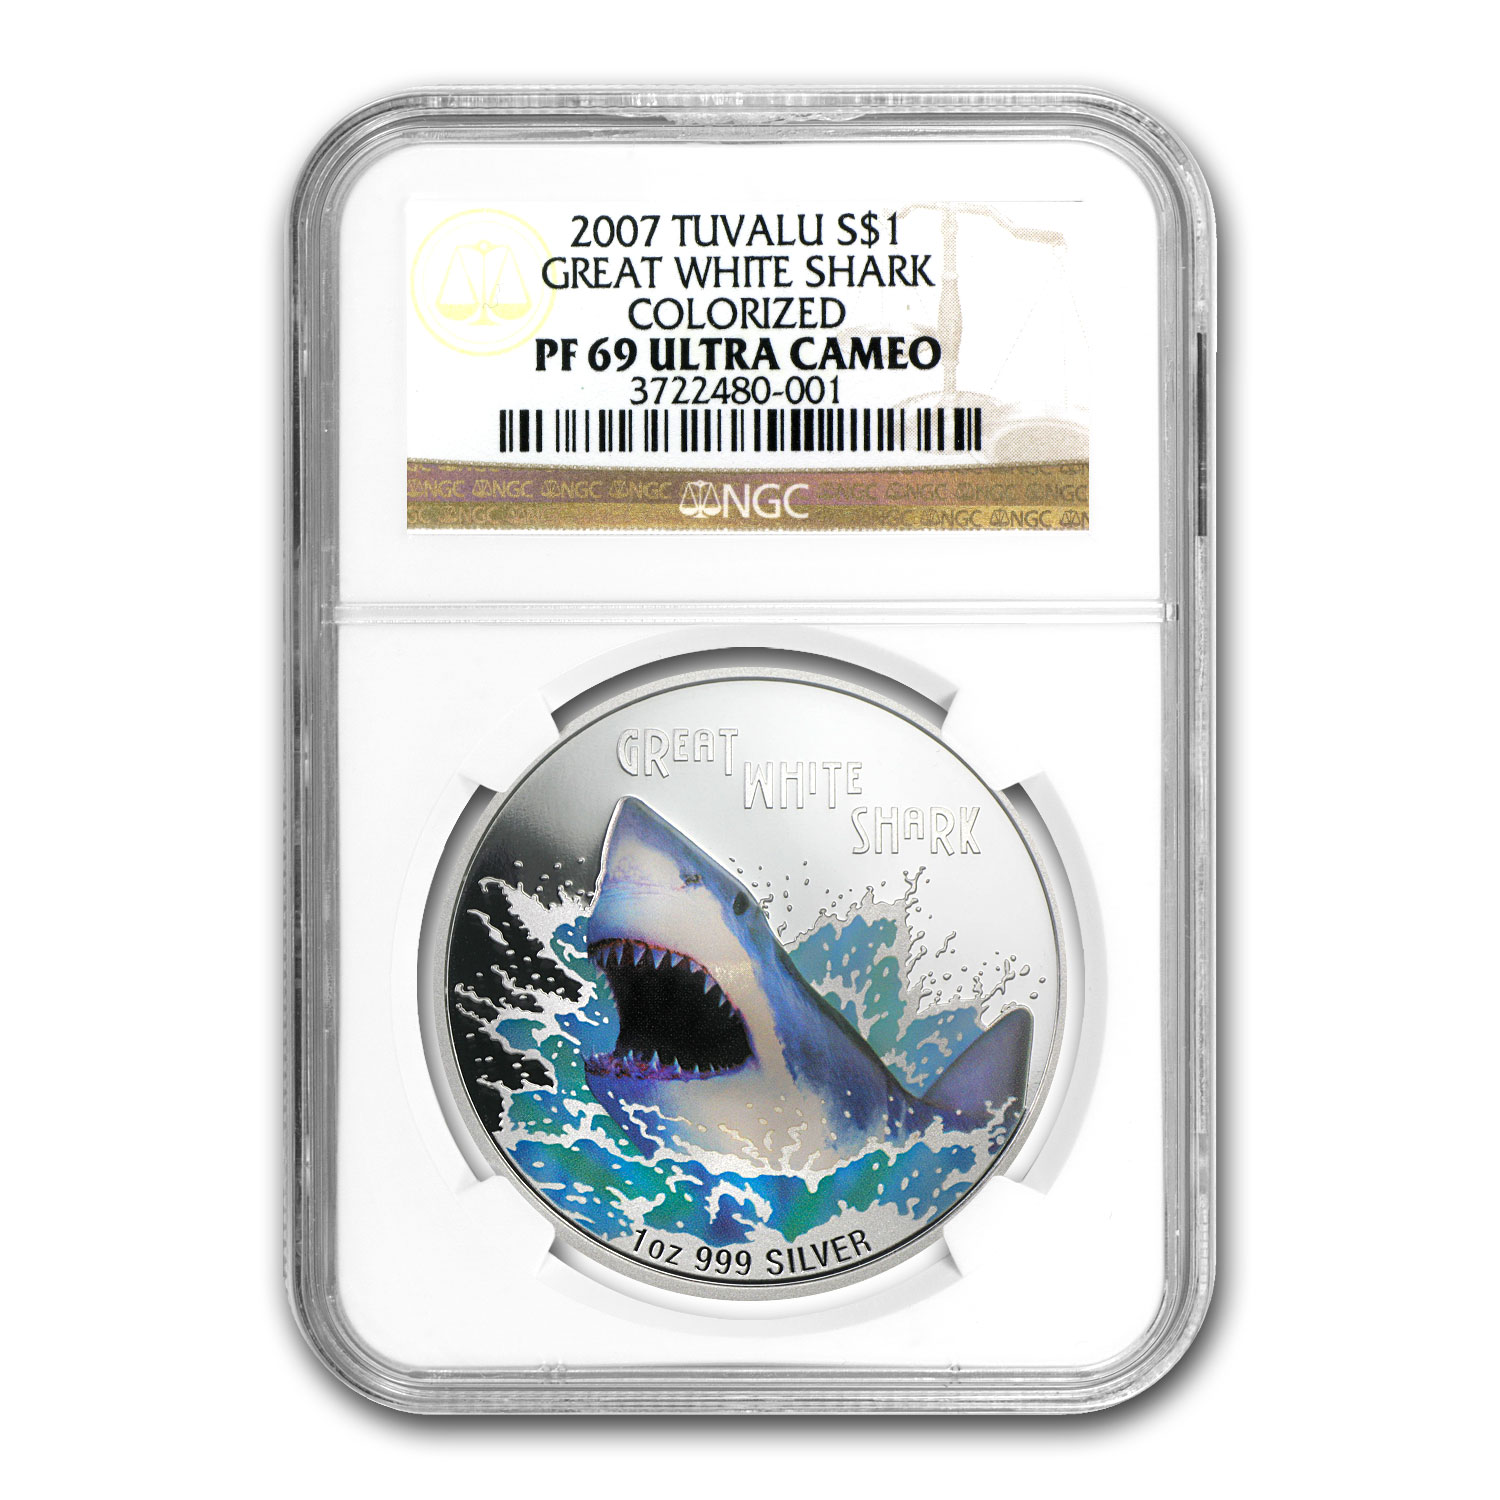 2007 Tuvalu 1 oz Silver Great White Shark PF-69 NGC